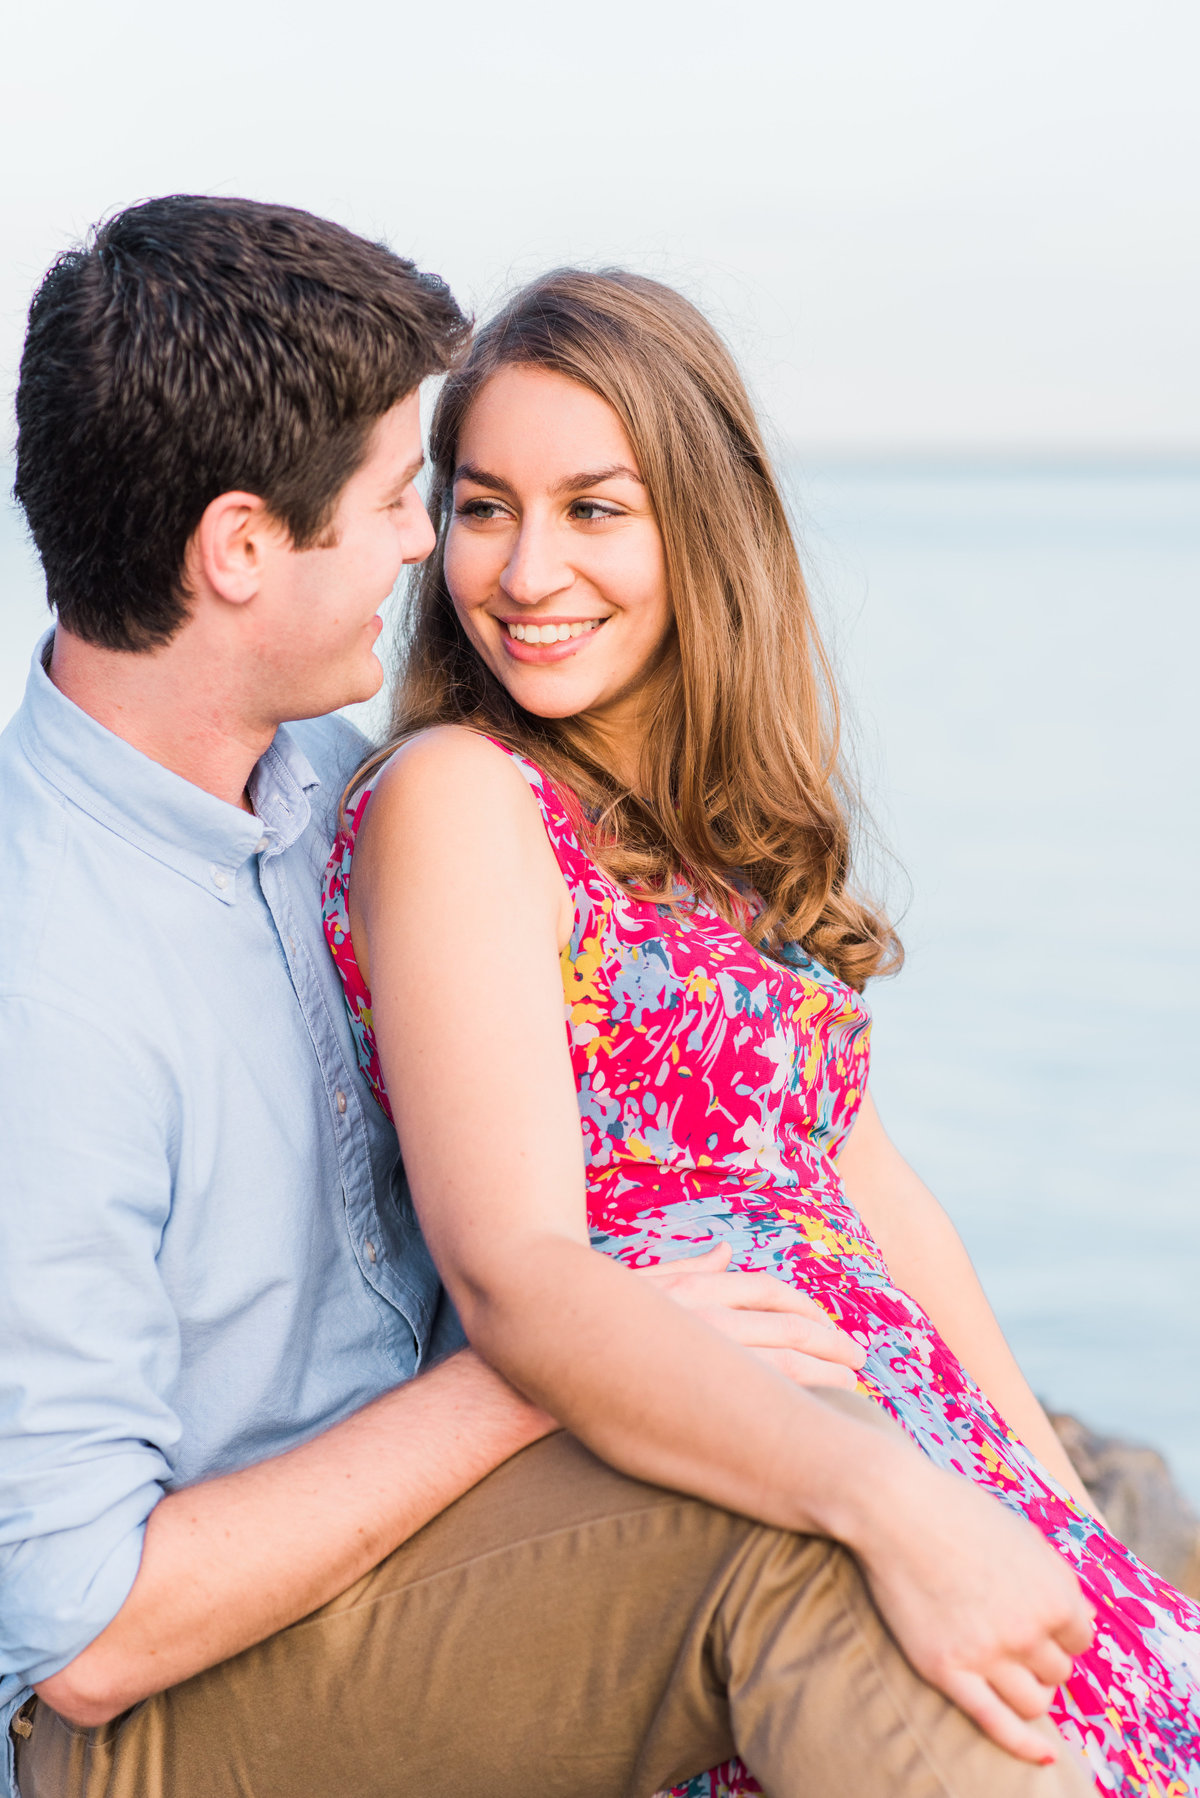 NY-Larchmont-Manor-Park-Engagement-Session-Photo-002